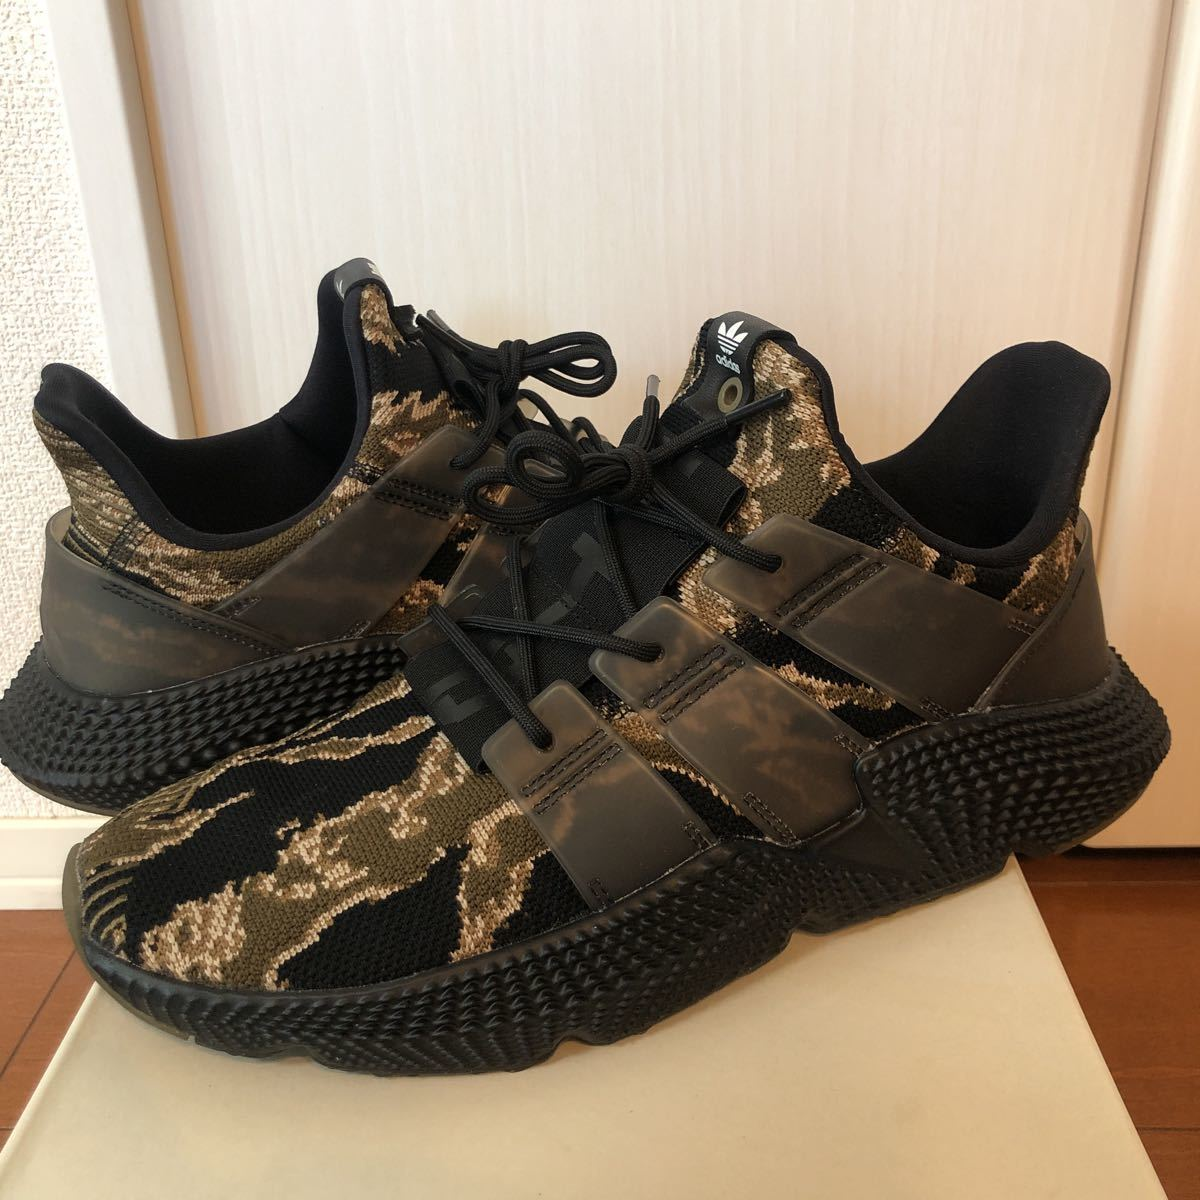 new styles d9940 5a7a9 アディダス プロフィア アンディフィーティッド UNDEFEATED adidas prophere yeezy boost ultraboost  ウルトラブースト コンソーシアム